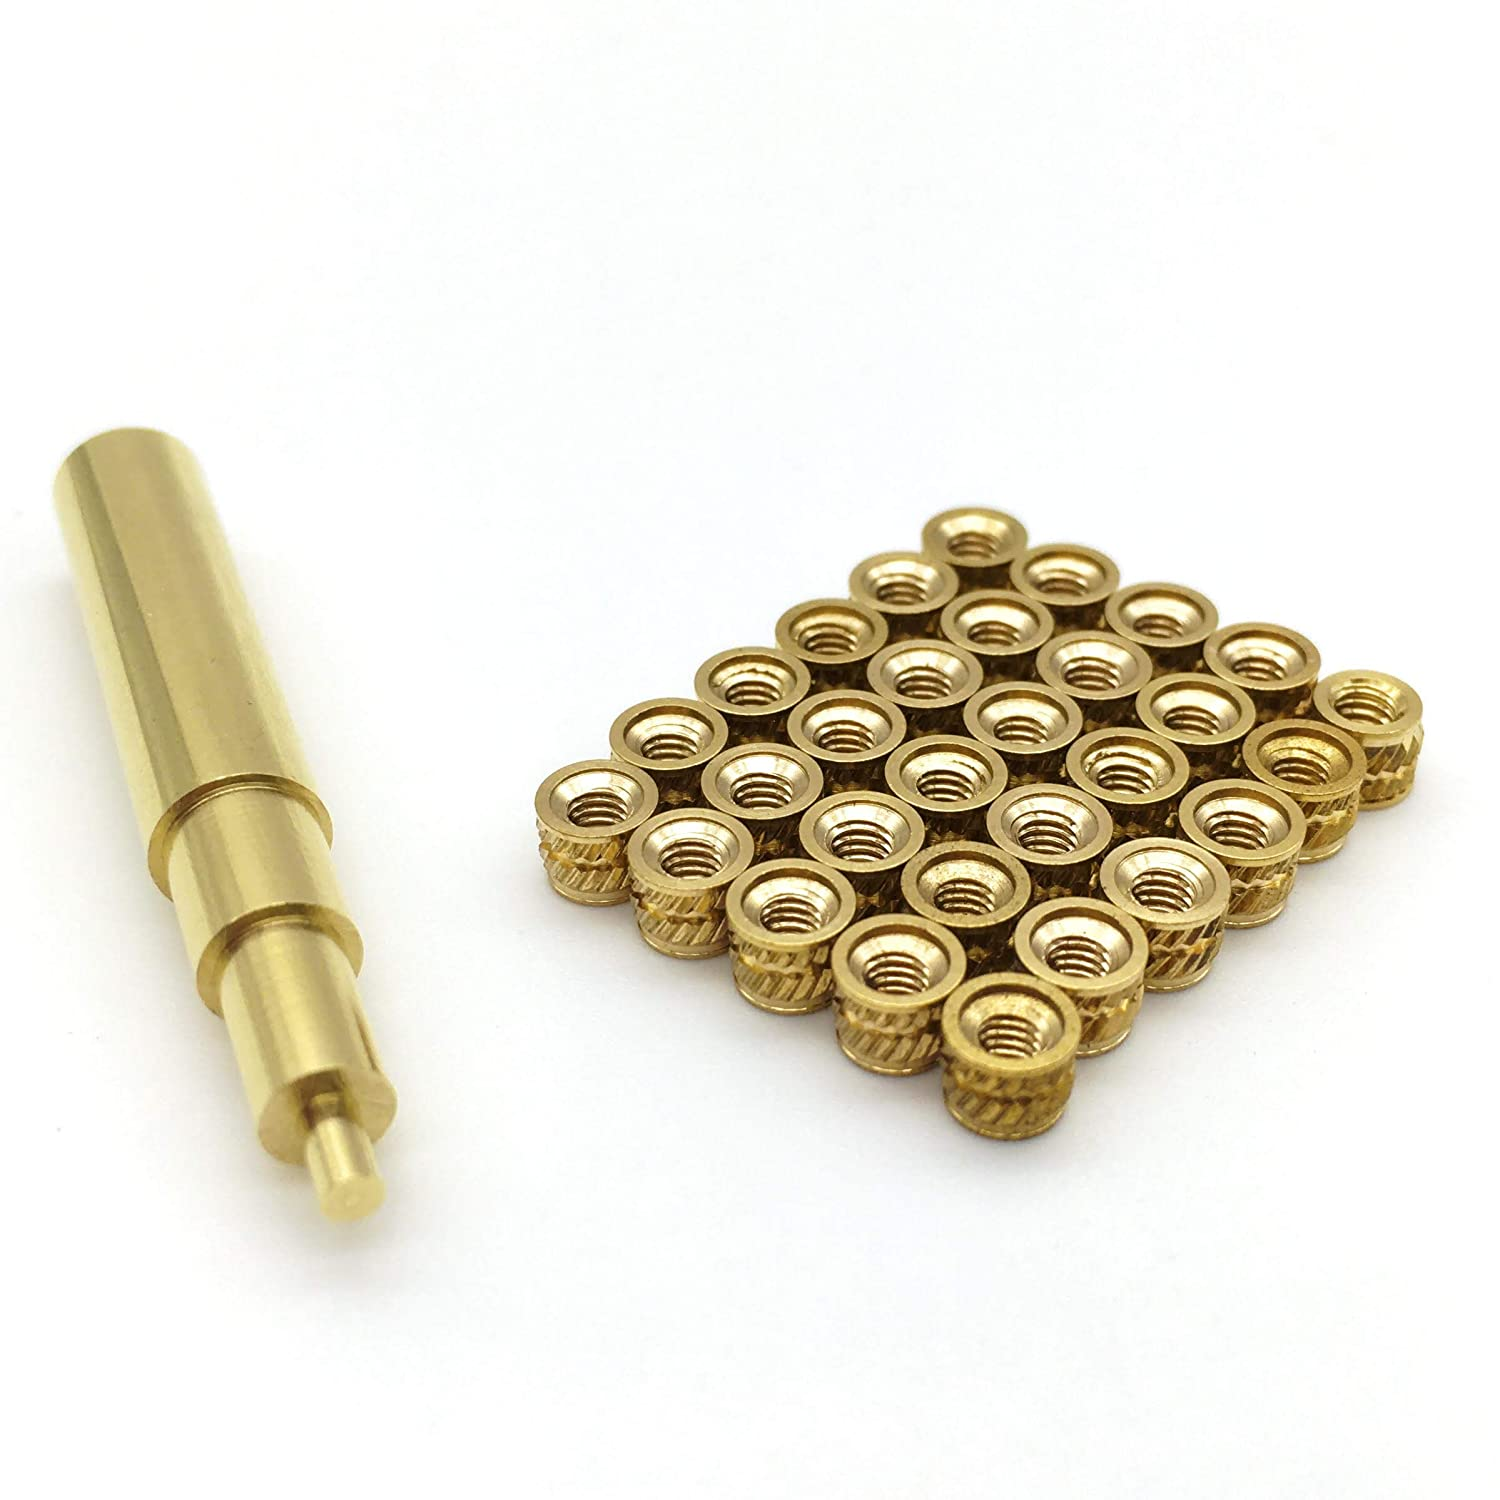 Heat Set Insert Tip for M2.5 with Qty 30 M2.5 Inserts Compatible with Hakko FX-888D and Weller SP40NUS Irons Used for Connecting and Fastening 3D Printed Parts.